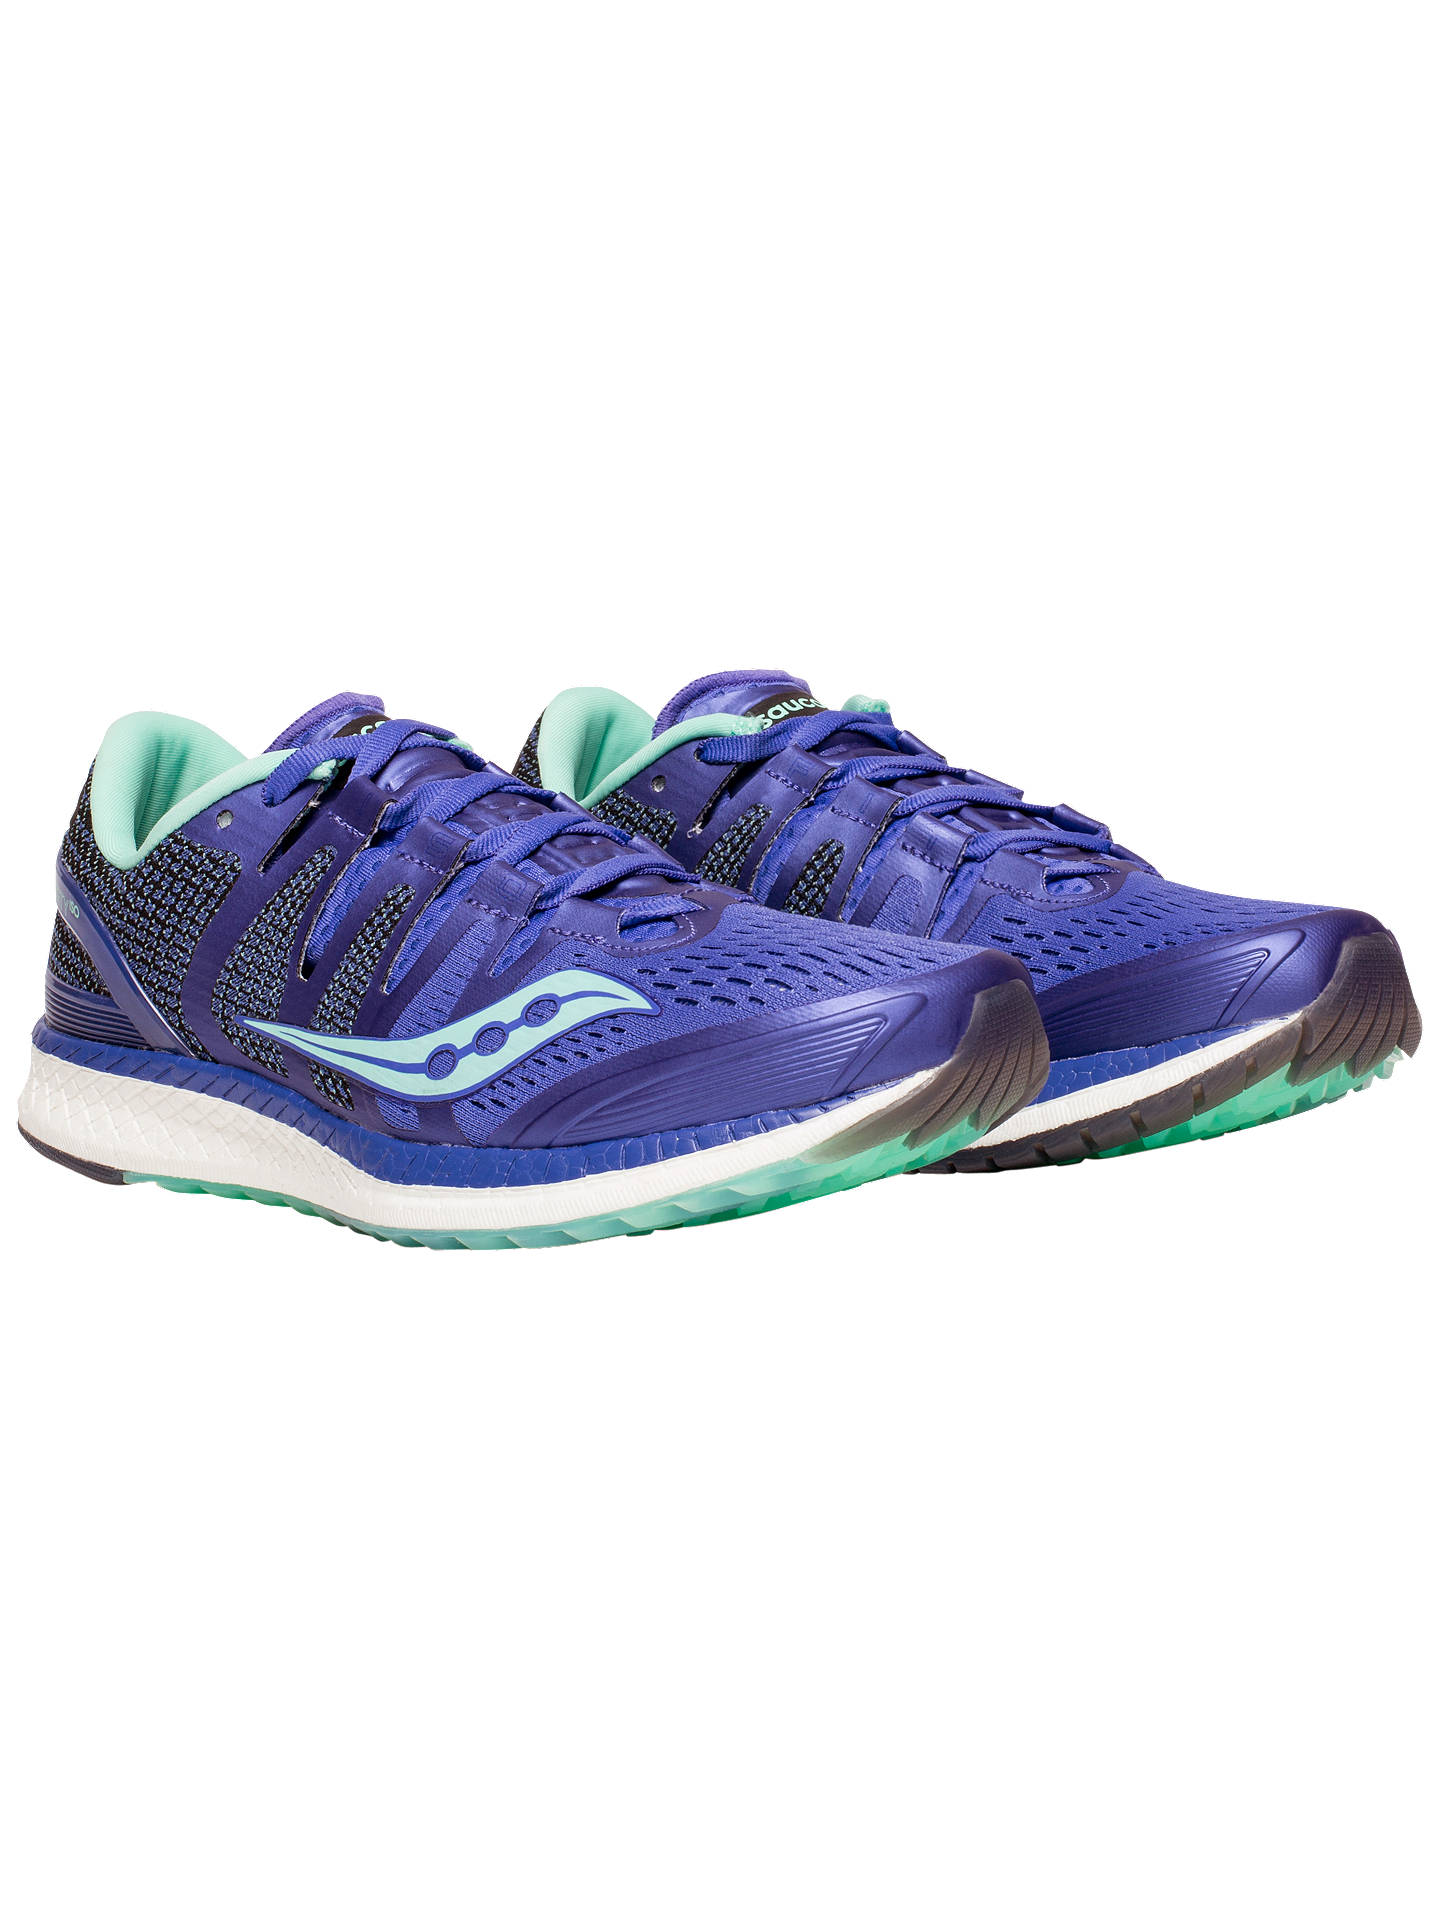 Buy Saucony Liberty ISO Women's Running Shoes, Violet/White, 4 Online at johnlewis.com